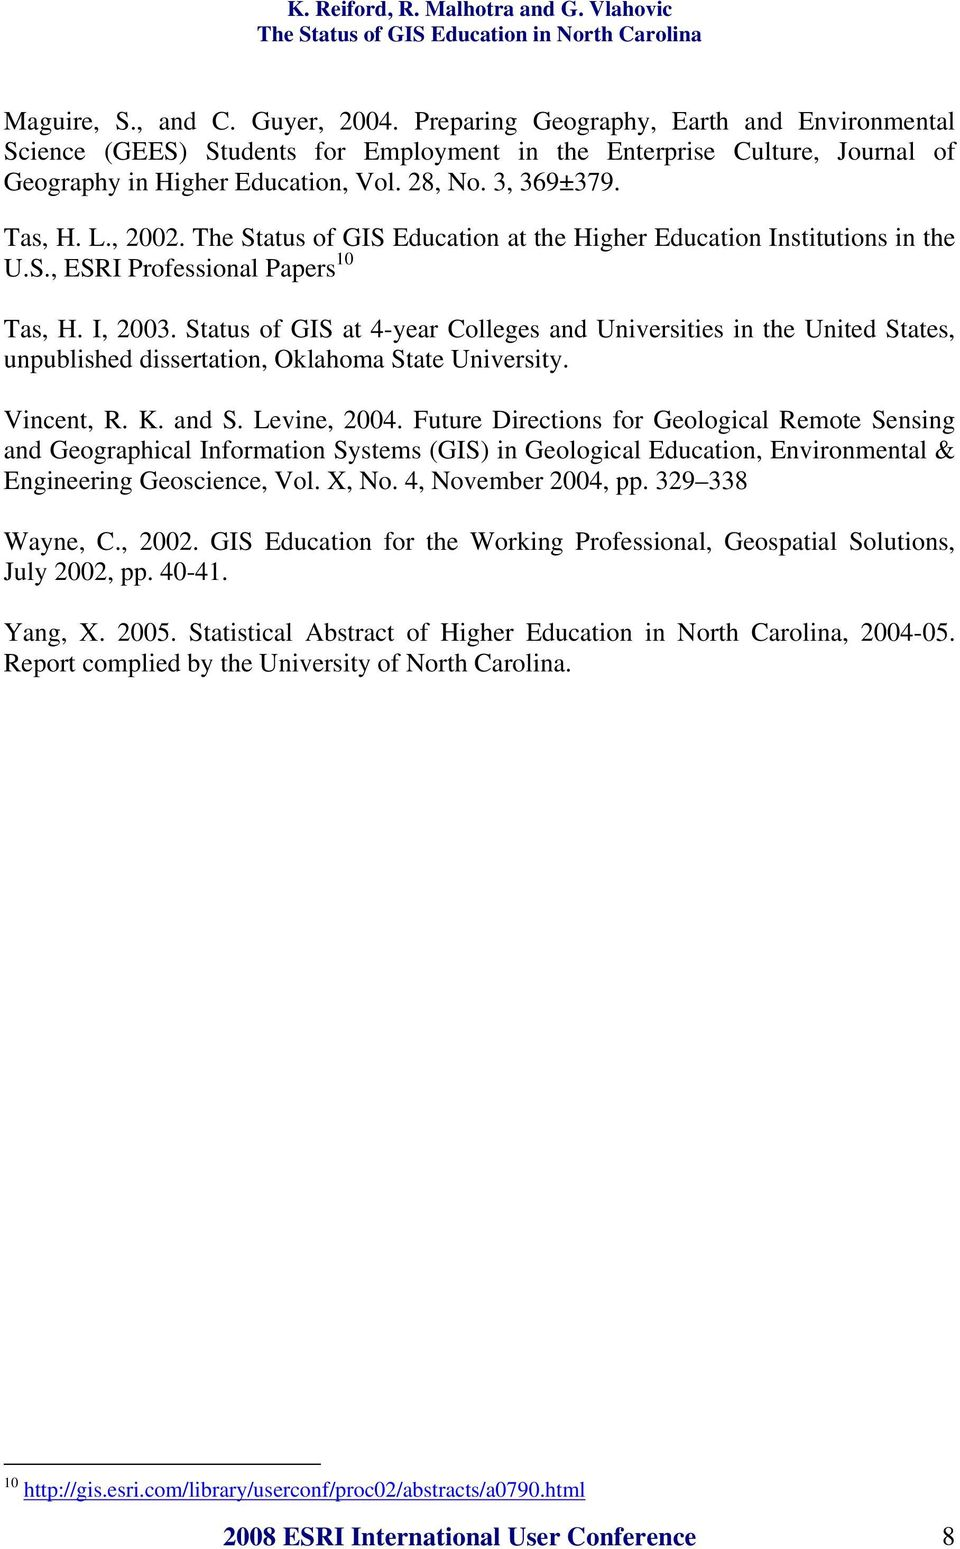 Status of GIS at 4-year Colleges and Universities in the United States, unpublished dissertation, Oklahoma State University. Vincent, R. K. and S. Levine, 2004.